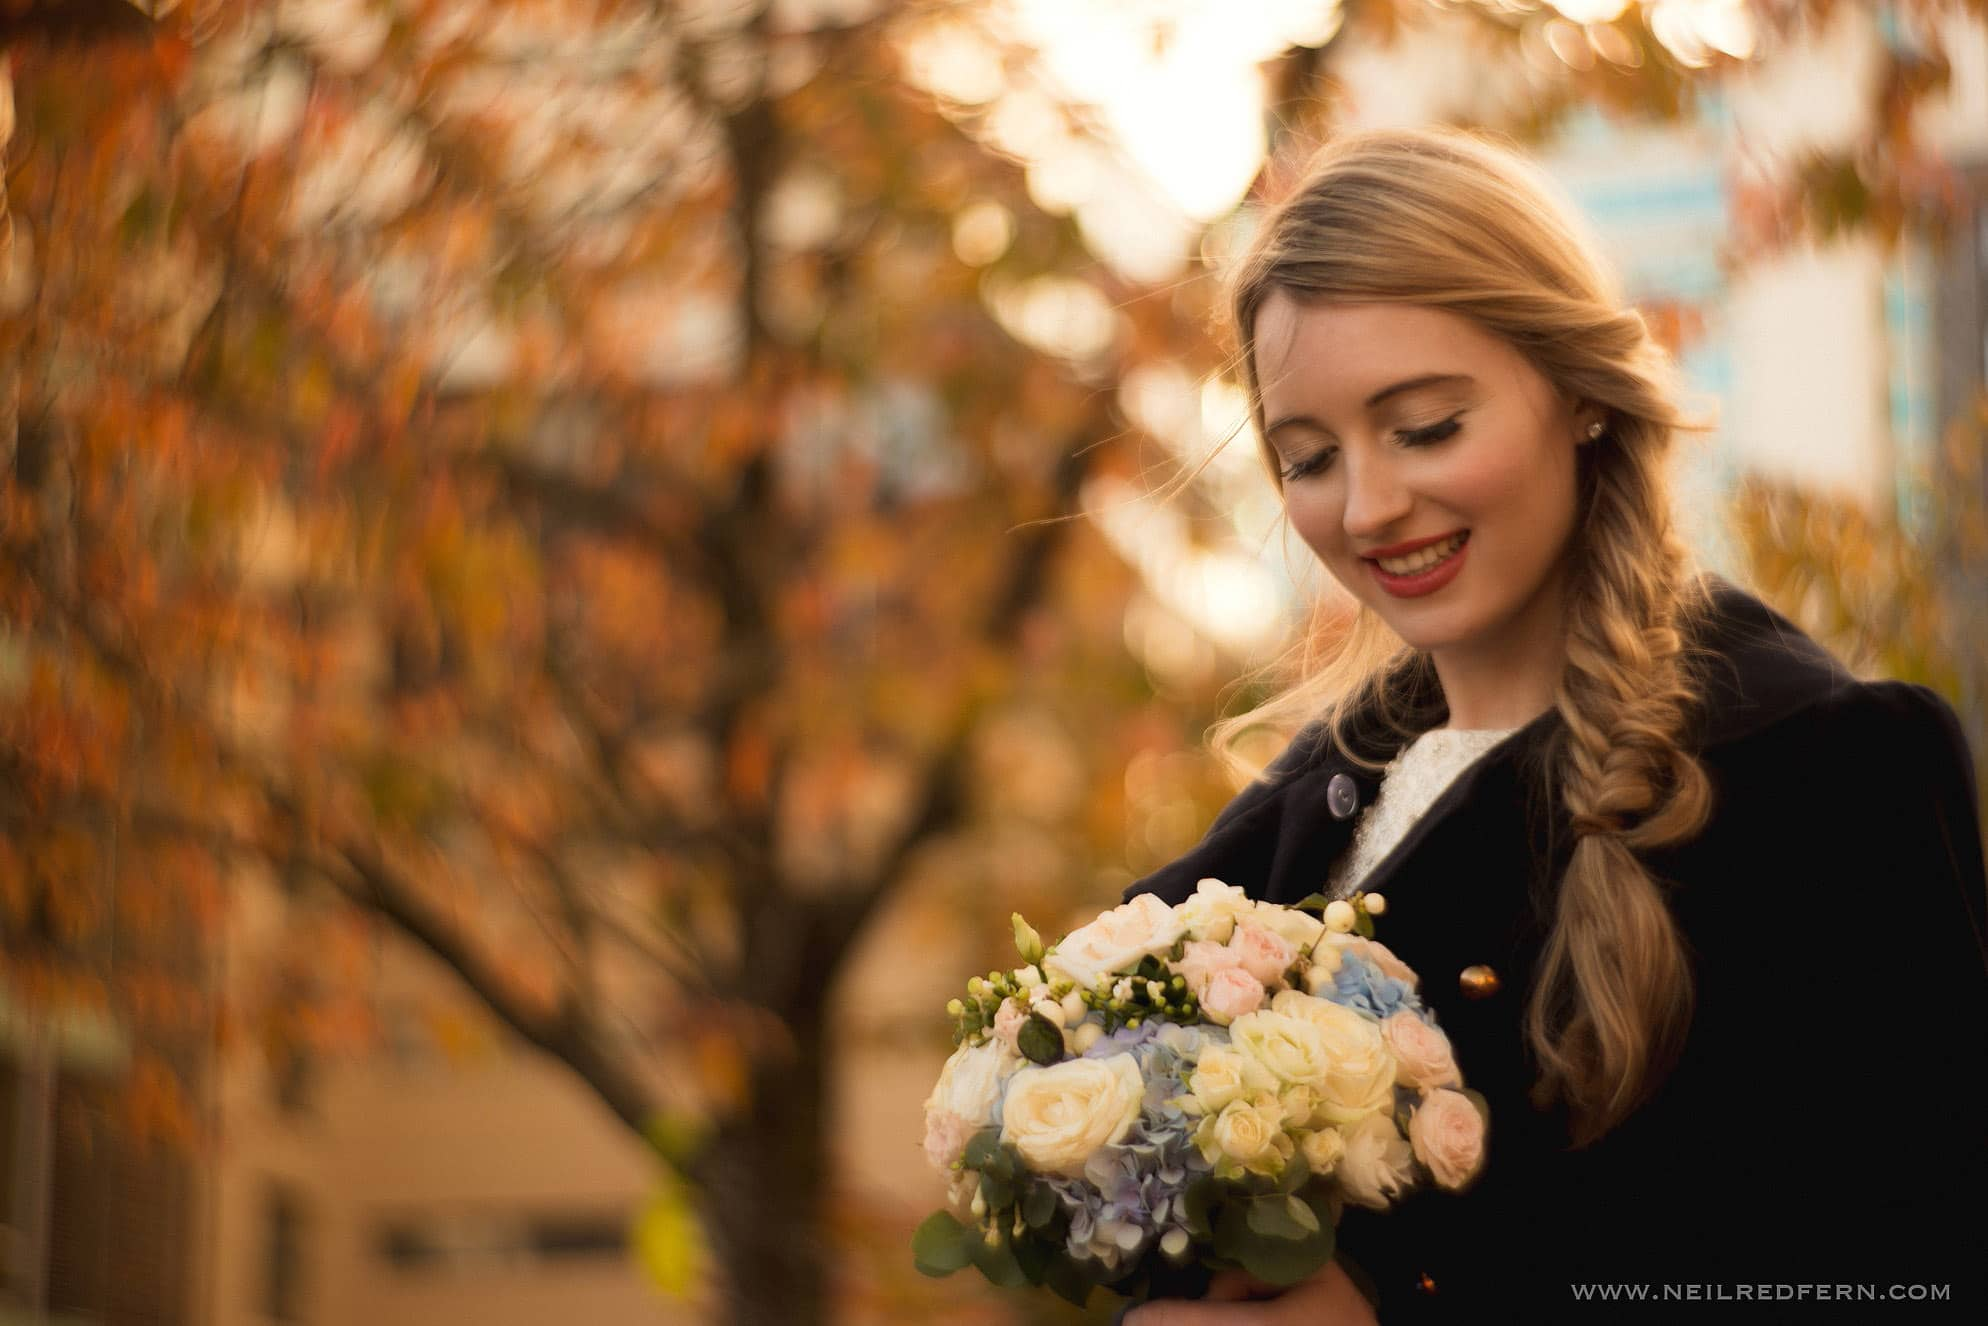 Wedding photography training 12